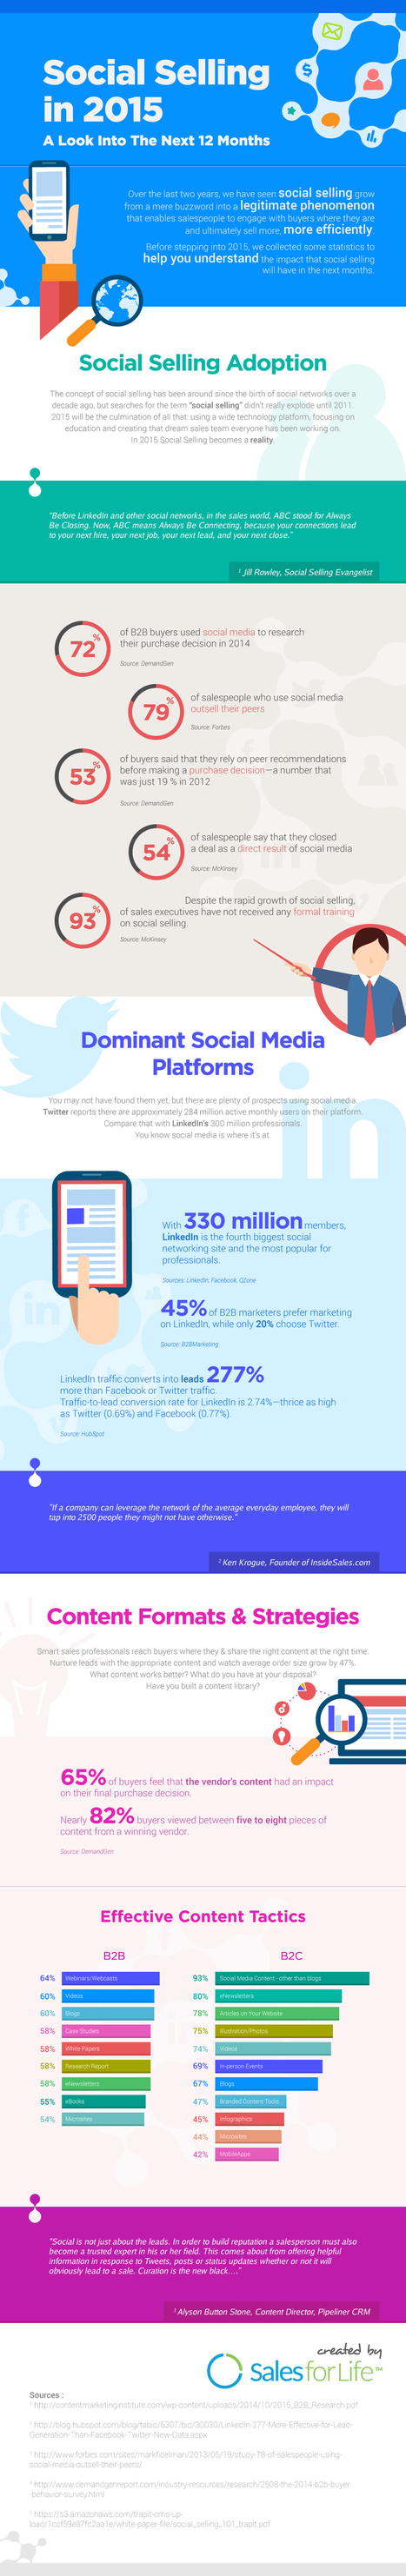 Social Selling Statistics for 2015 - Infographic - Brainy Marketer | Digital boards | Scoop.it